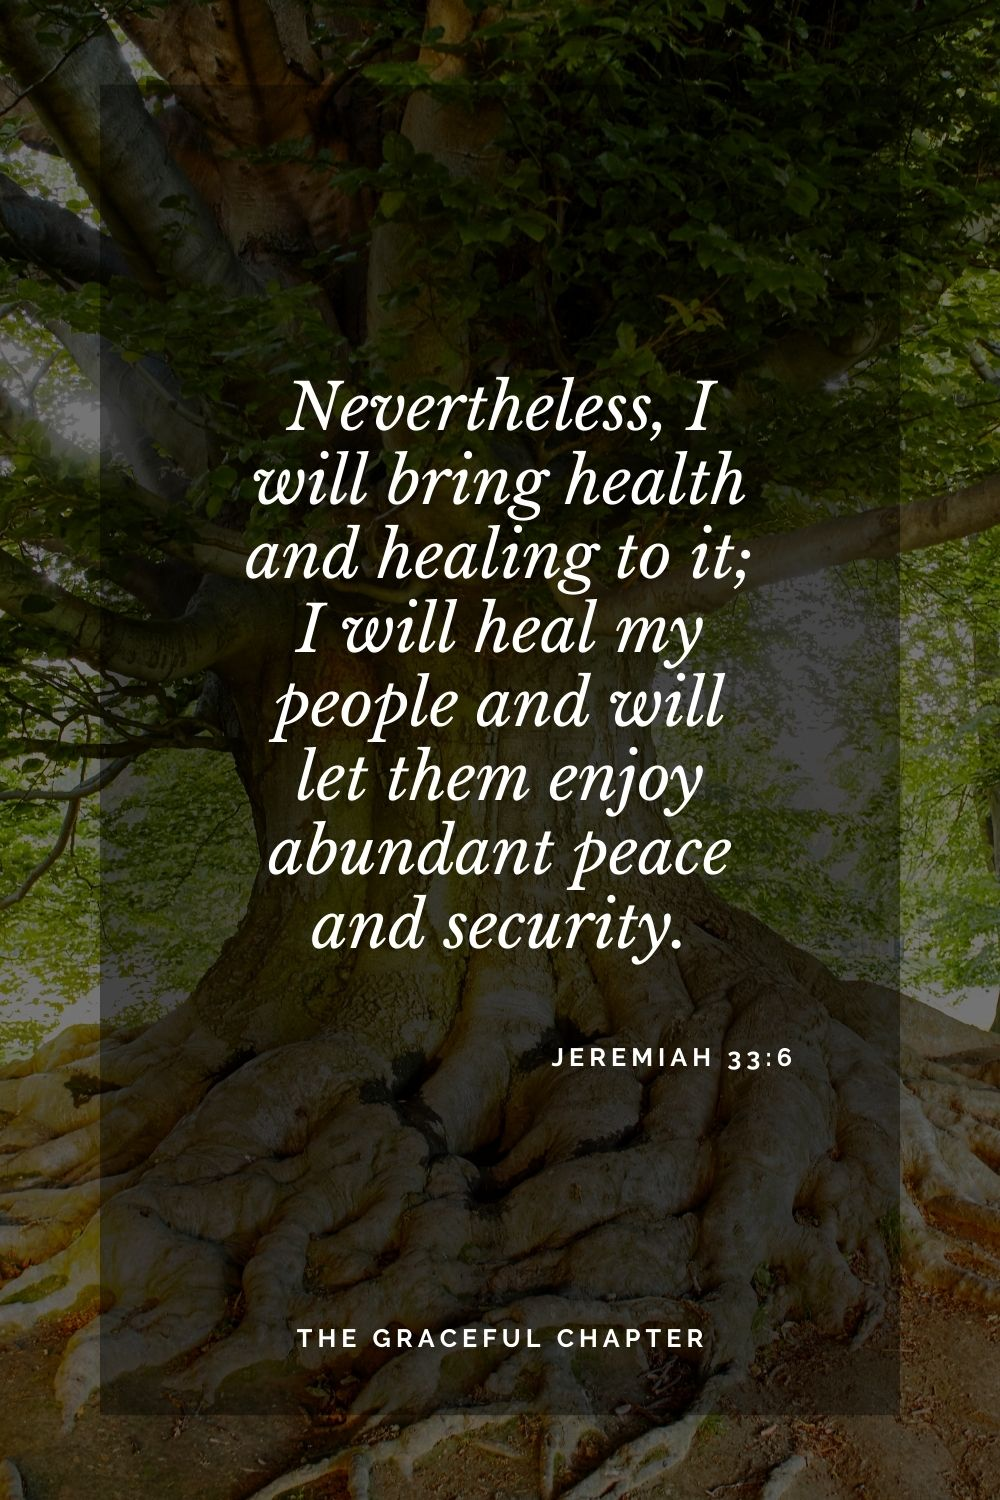 Nevertheless, I will bring health and healing to it;  I will heal my people and will let them enjoy  abundant peace and security. -Jeremiah 33:6